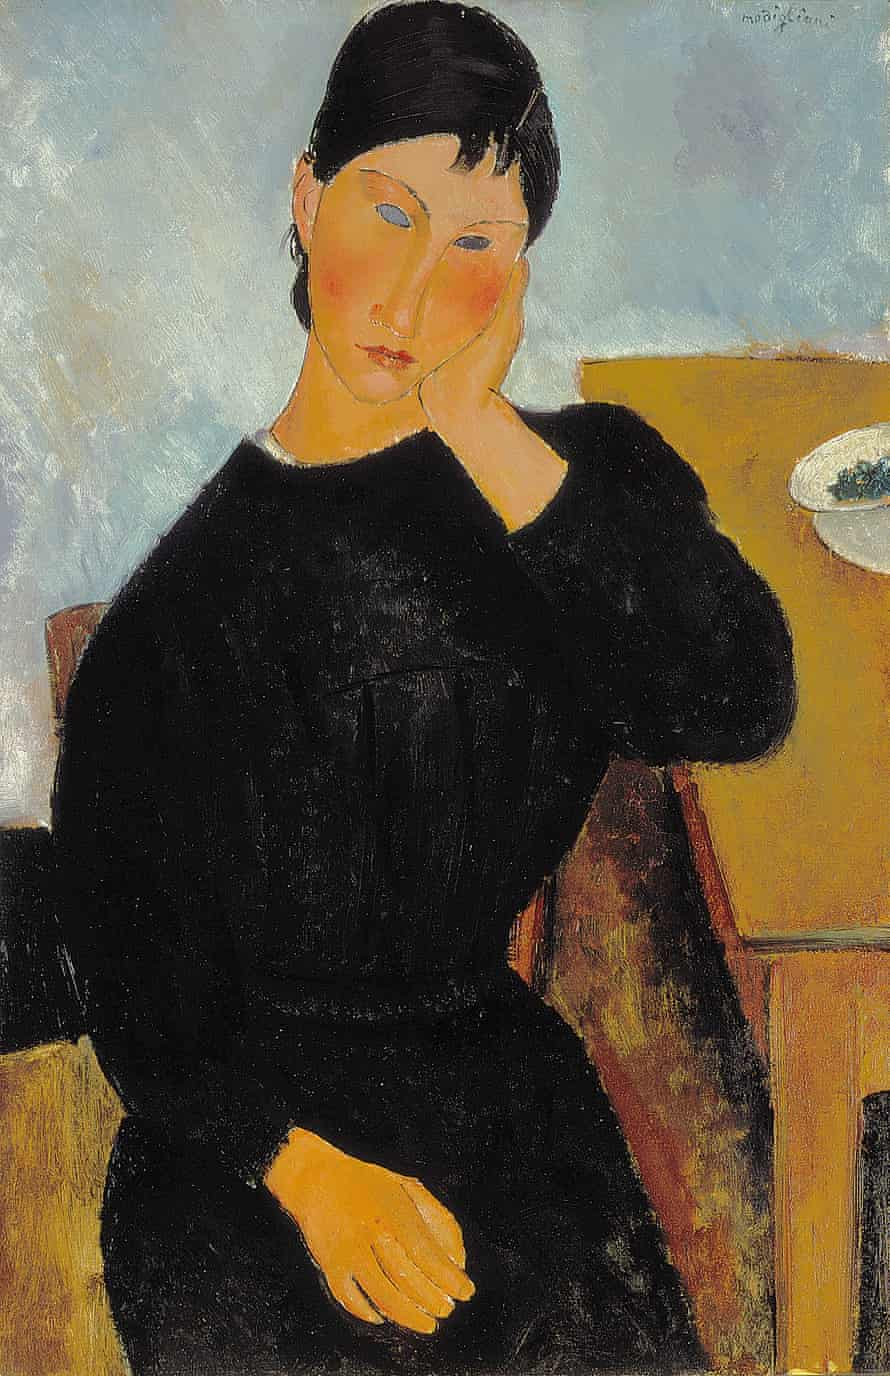 Elvira Resting at a Table, 1919 by Amedeo Modigliani.